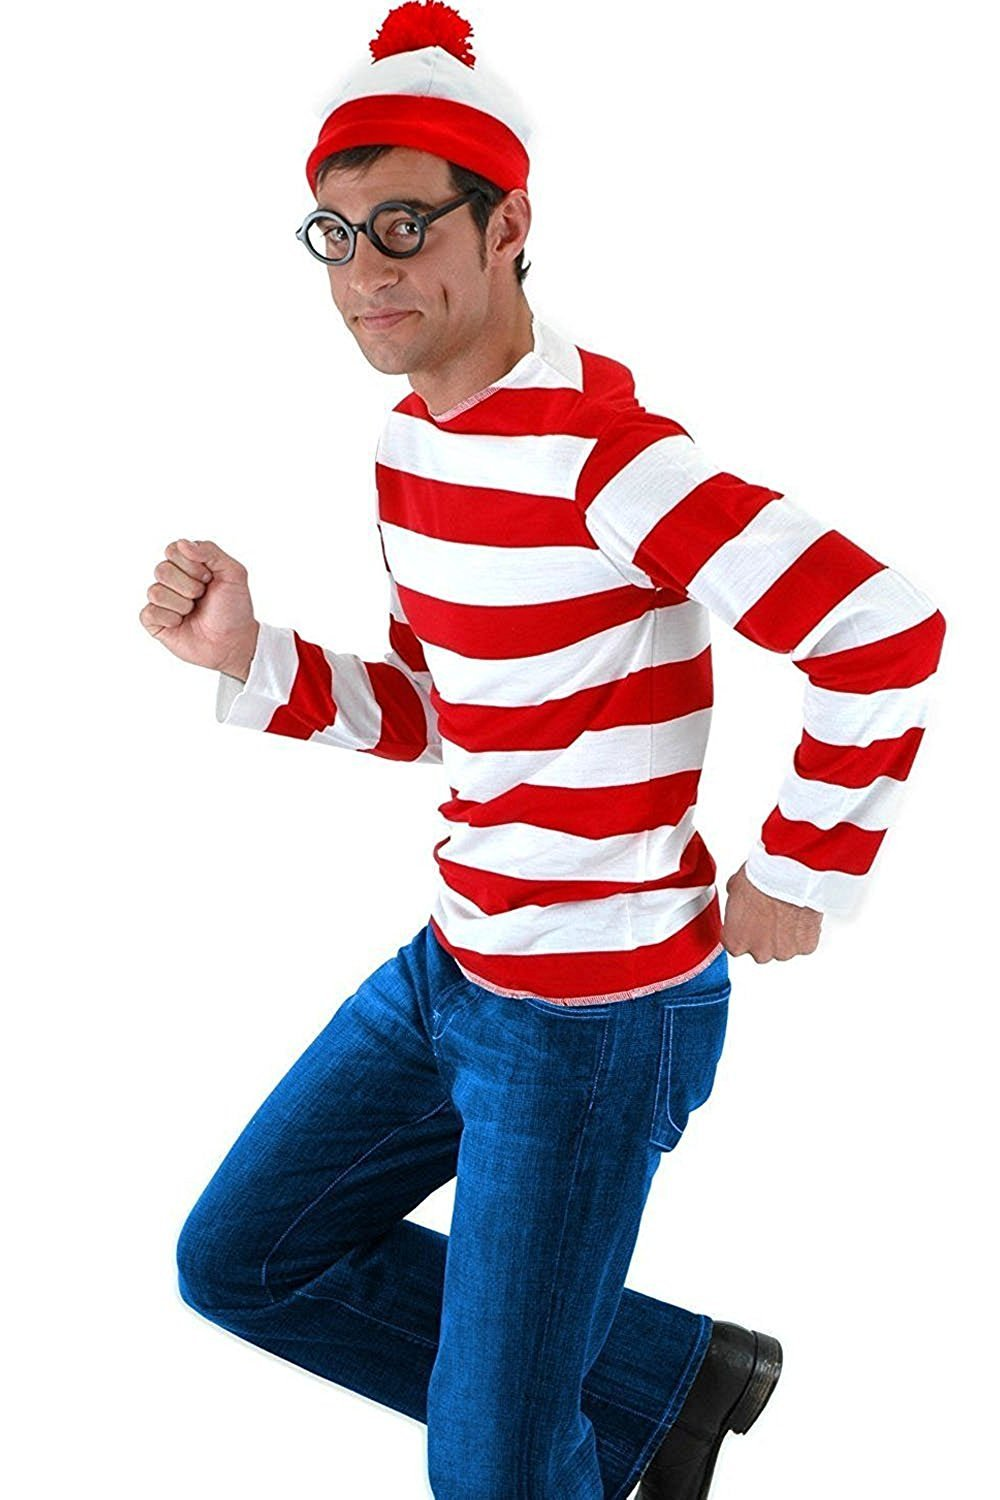 ZHIHONG Adult Where's Waldo Costume Funny Sweatshirt Outfit Glasses Suits (XL, Male)